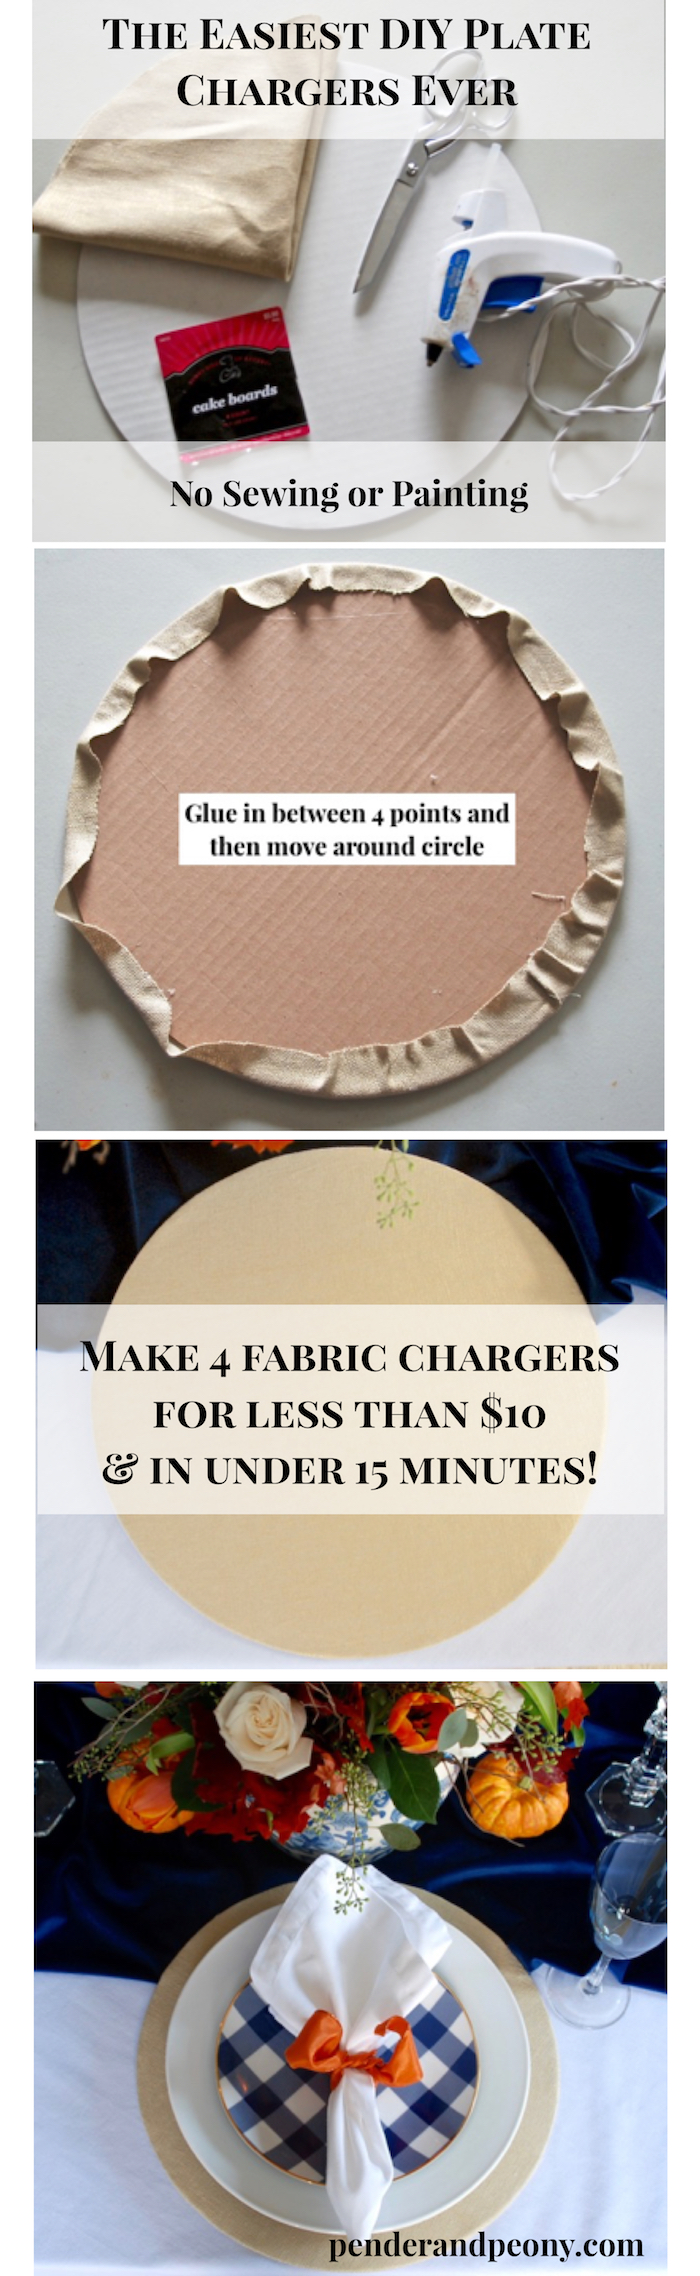 The Easiest Diy Plate Chargers Ever No Sewing Or Painting Pender Peony A Southern Blog